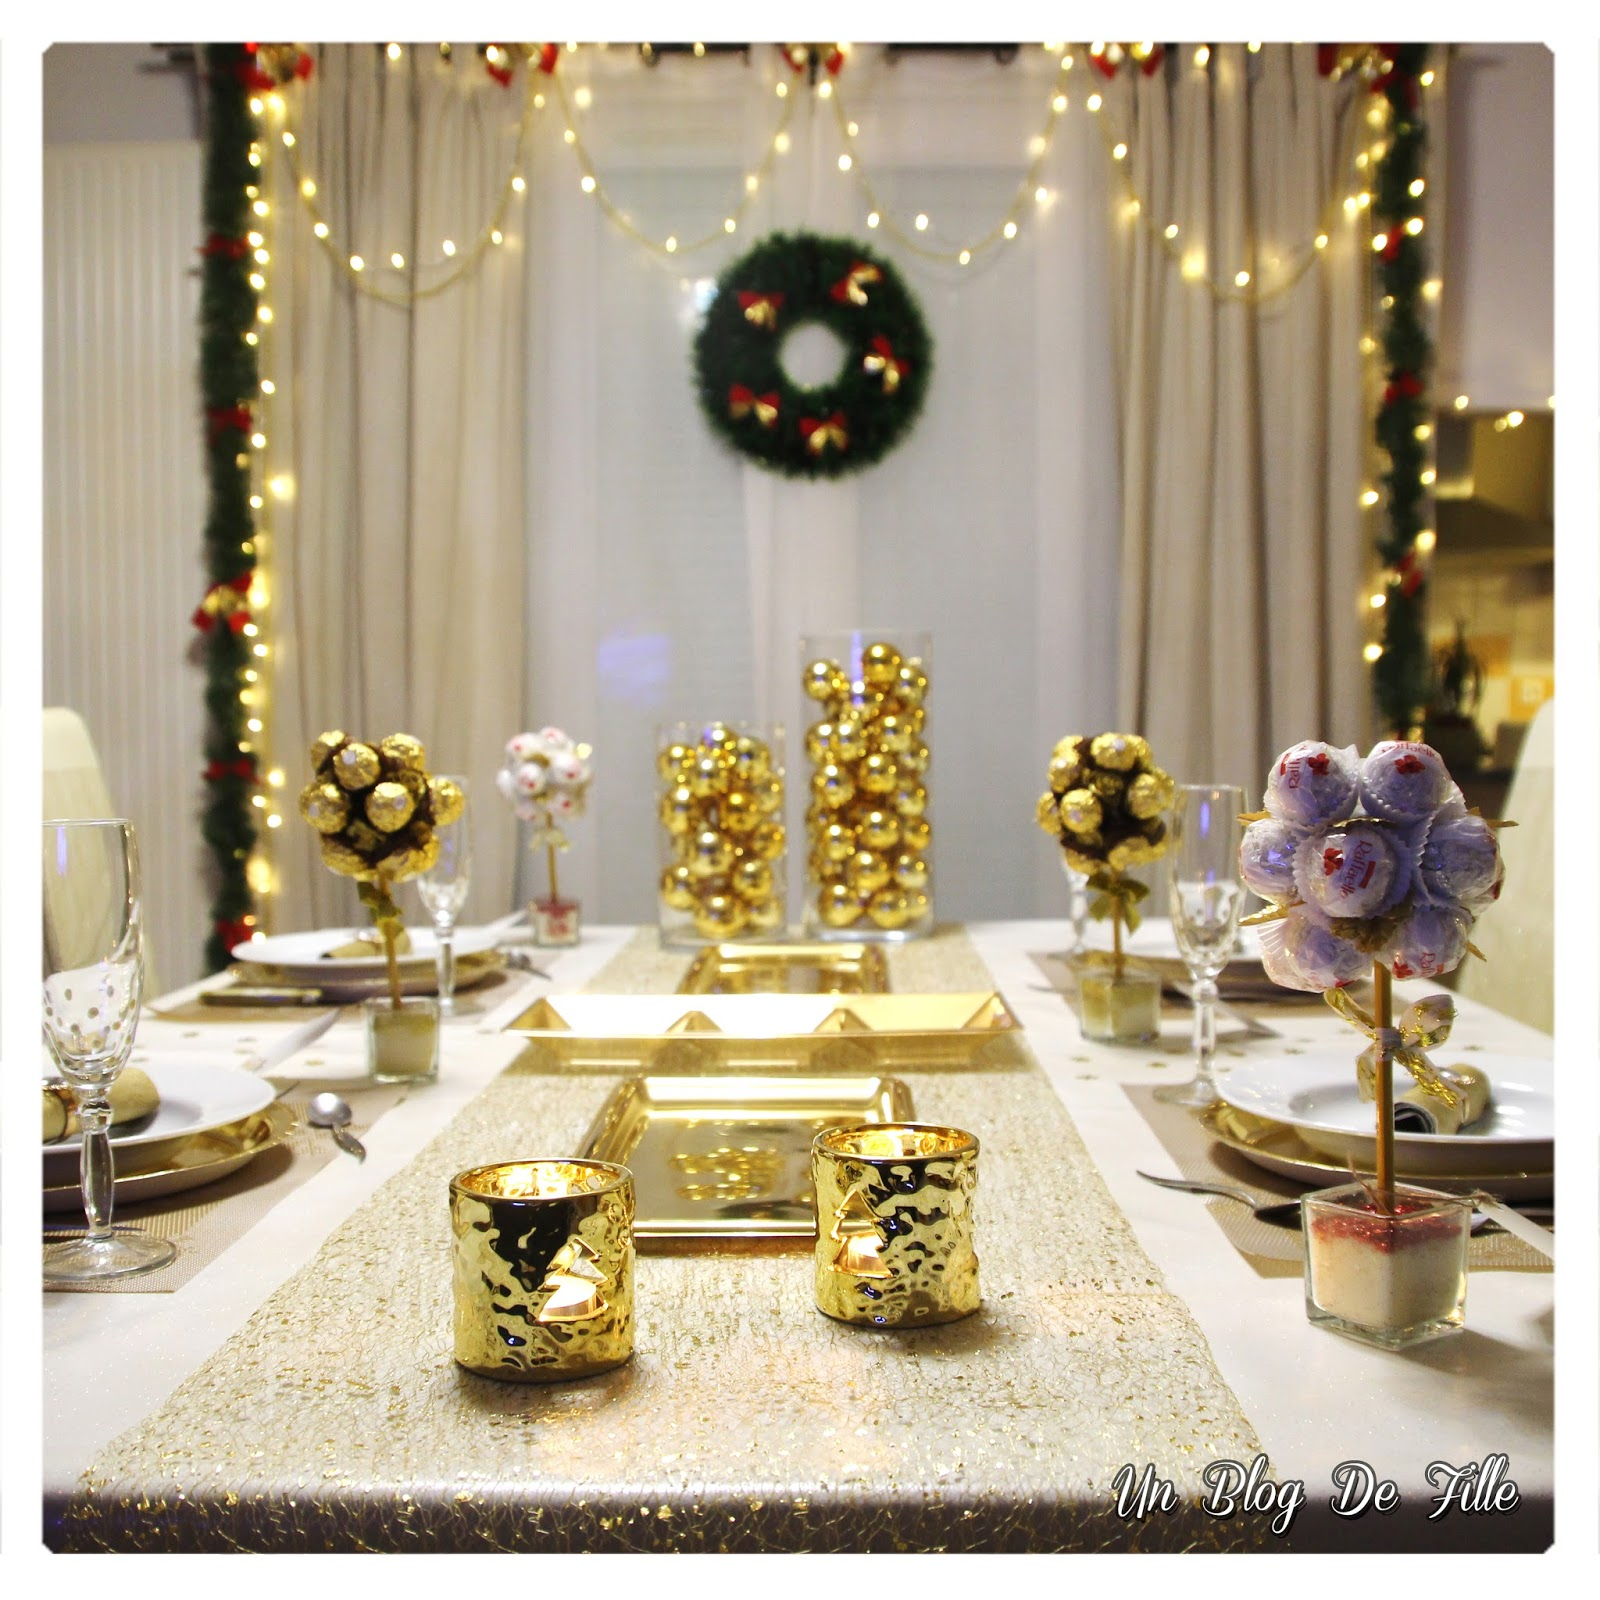 http://unblogdefille.blogspot.fr/2017/12/decoration-table-de-fete-or-pour-noel.html